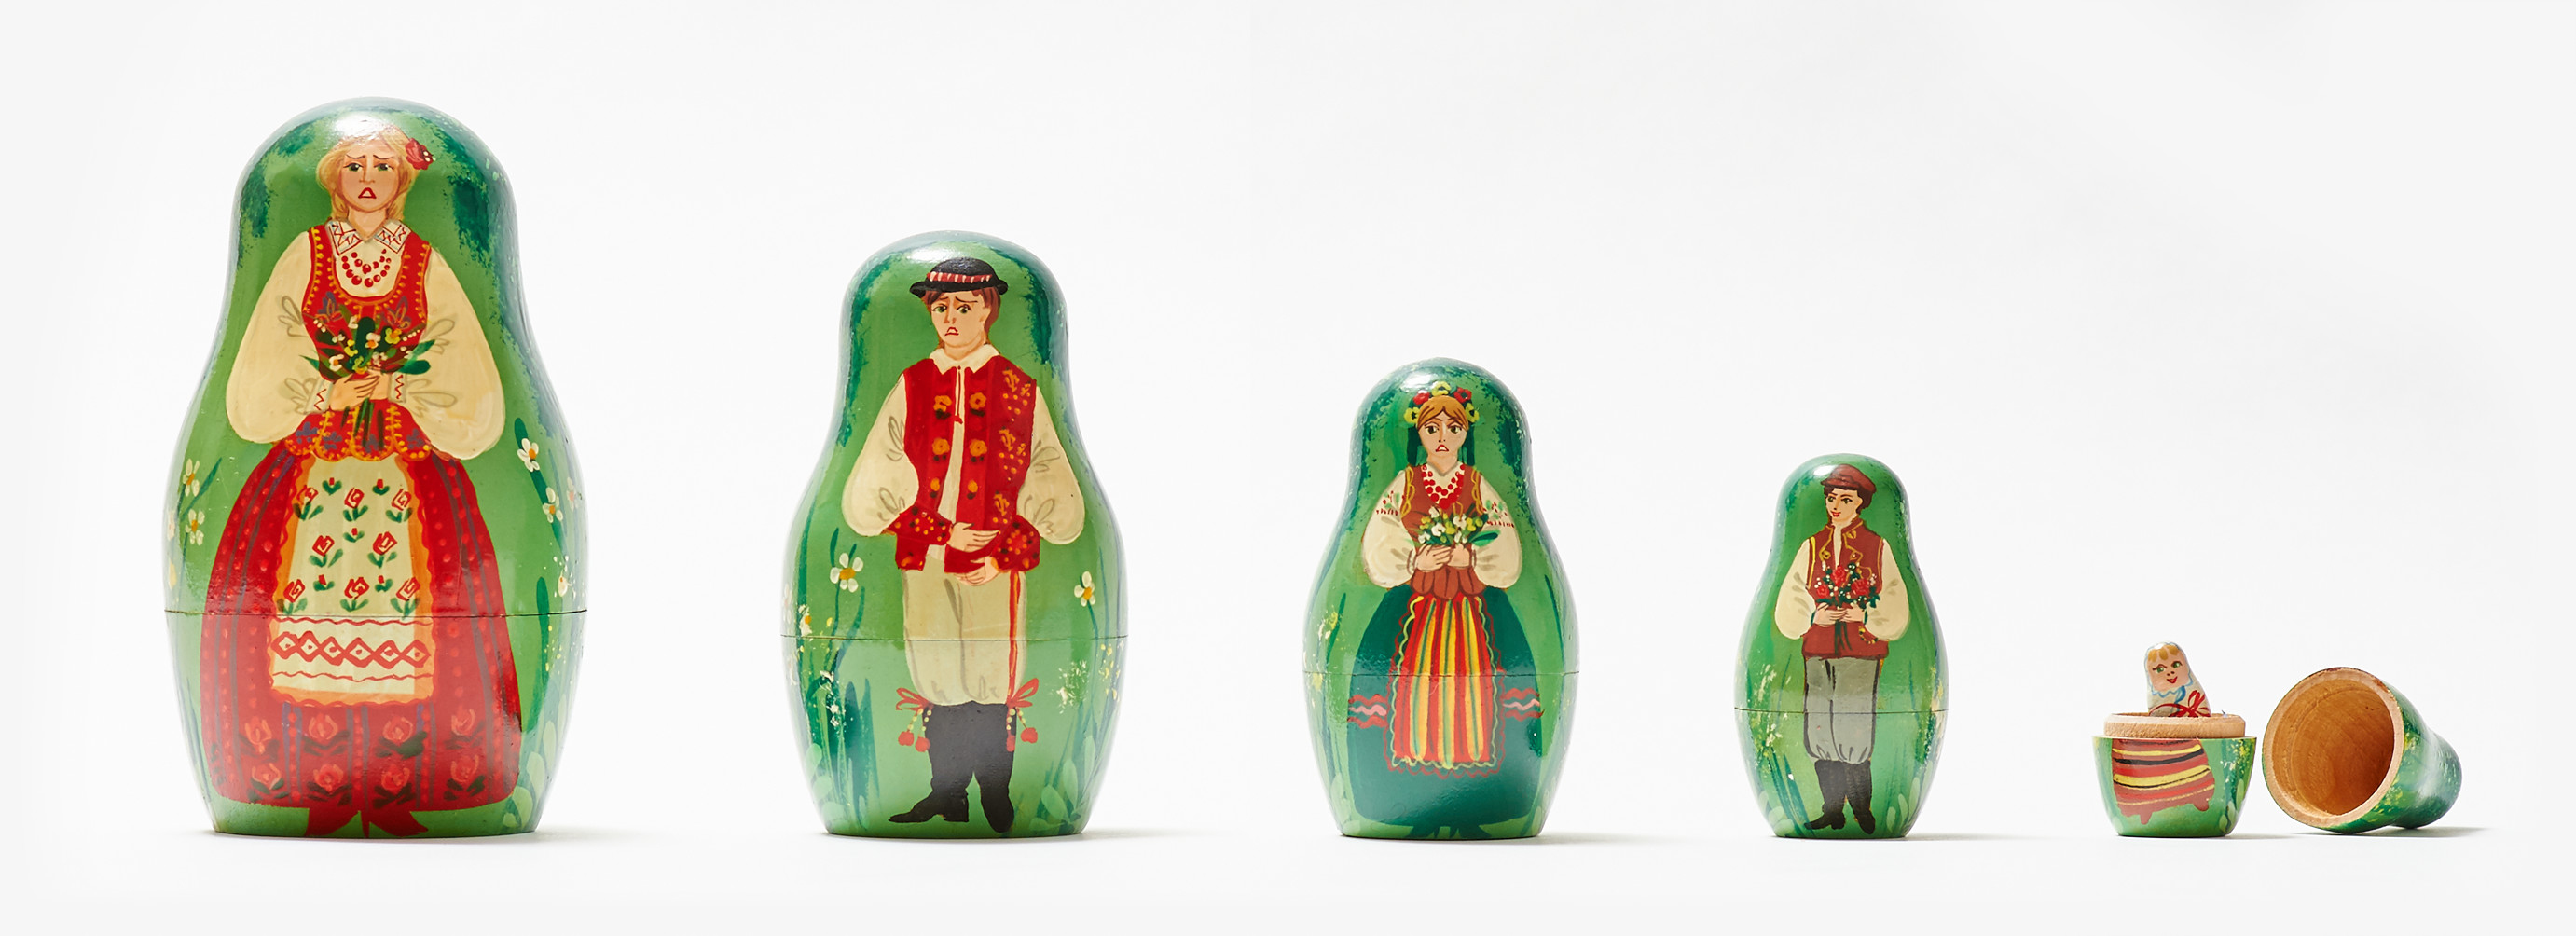 Russian nesting dolls illustrating the pattern of anxiety